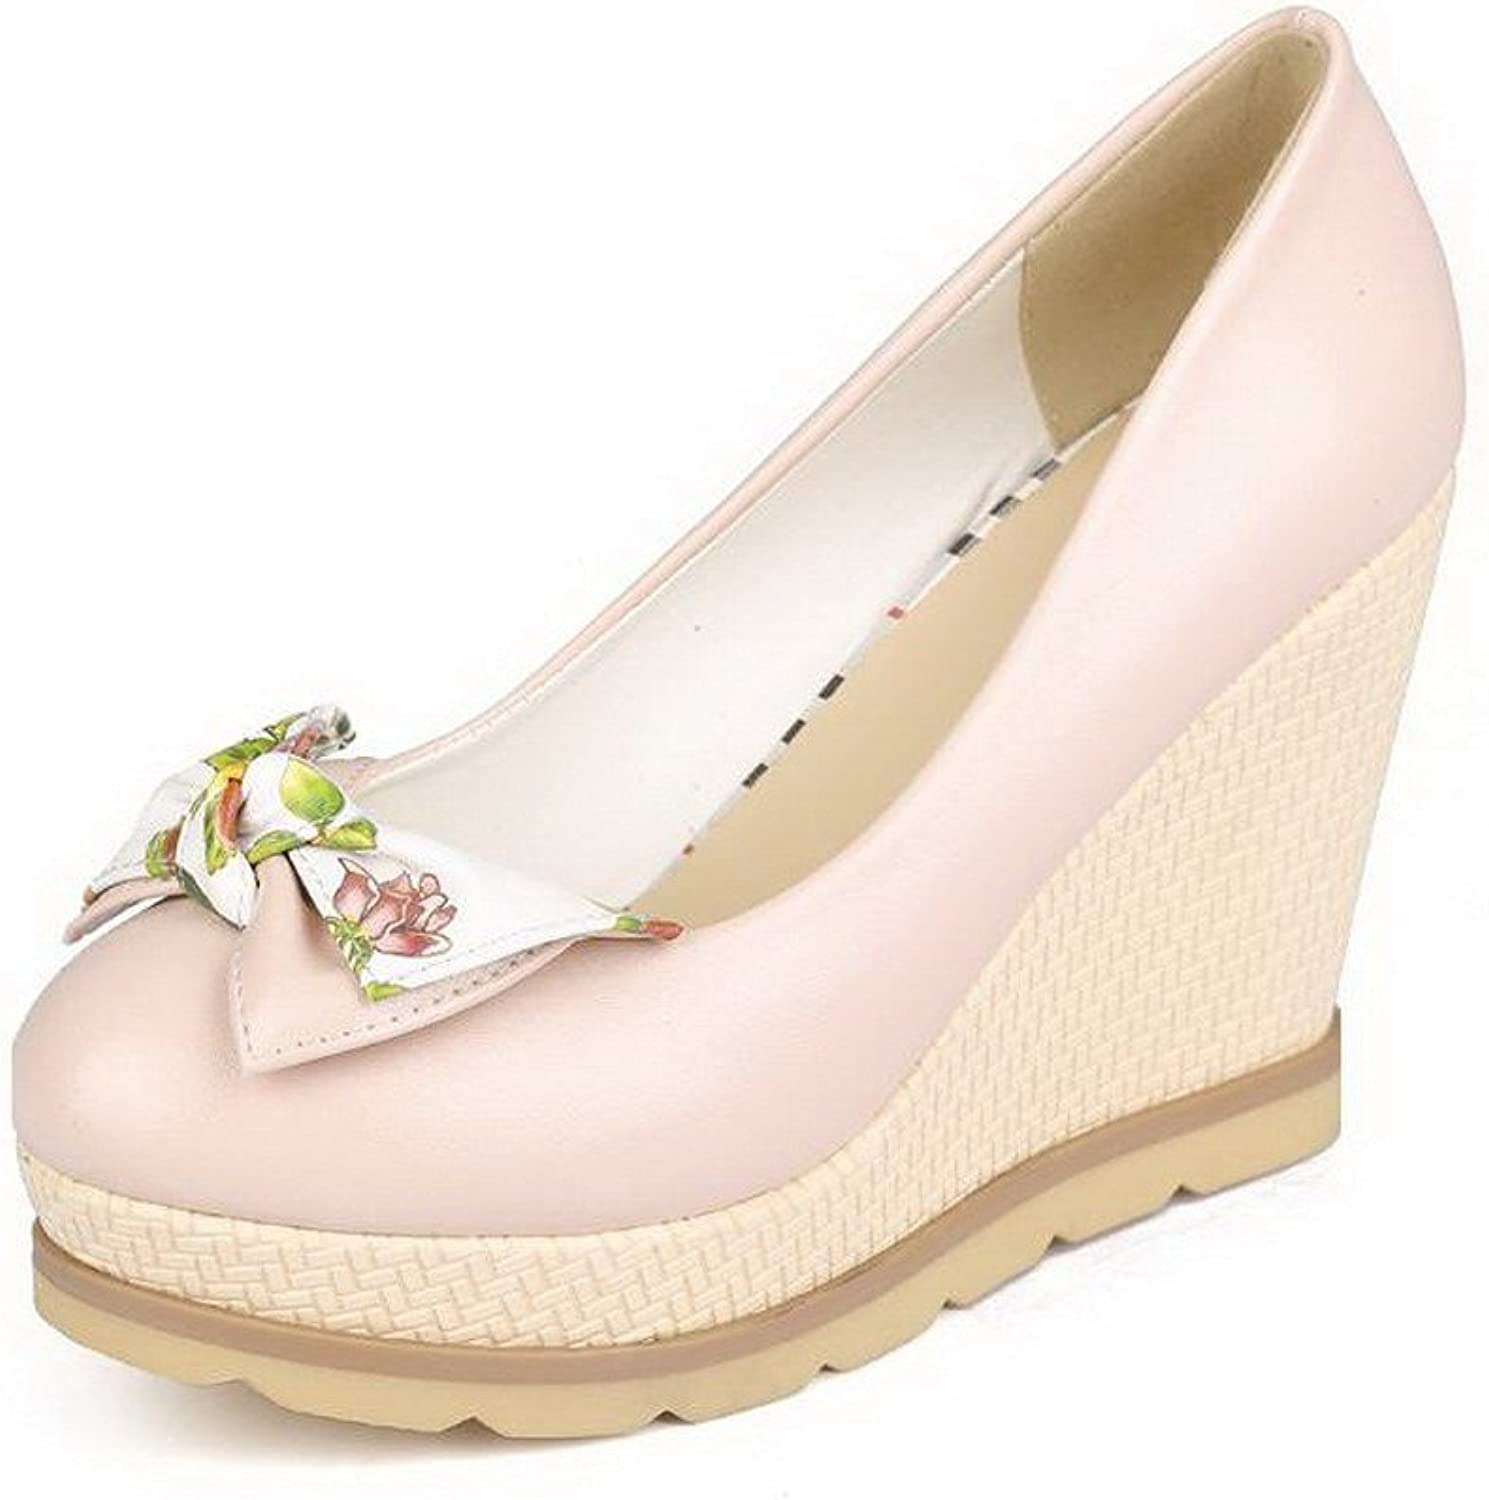 WeenFashion Women's Round Closed Toe Pull-on PU Assorted color High-Heels Pumps-shoes